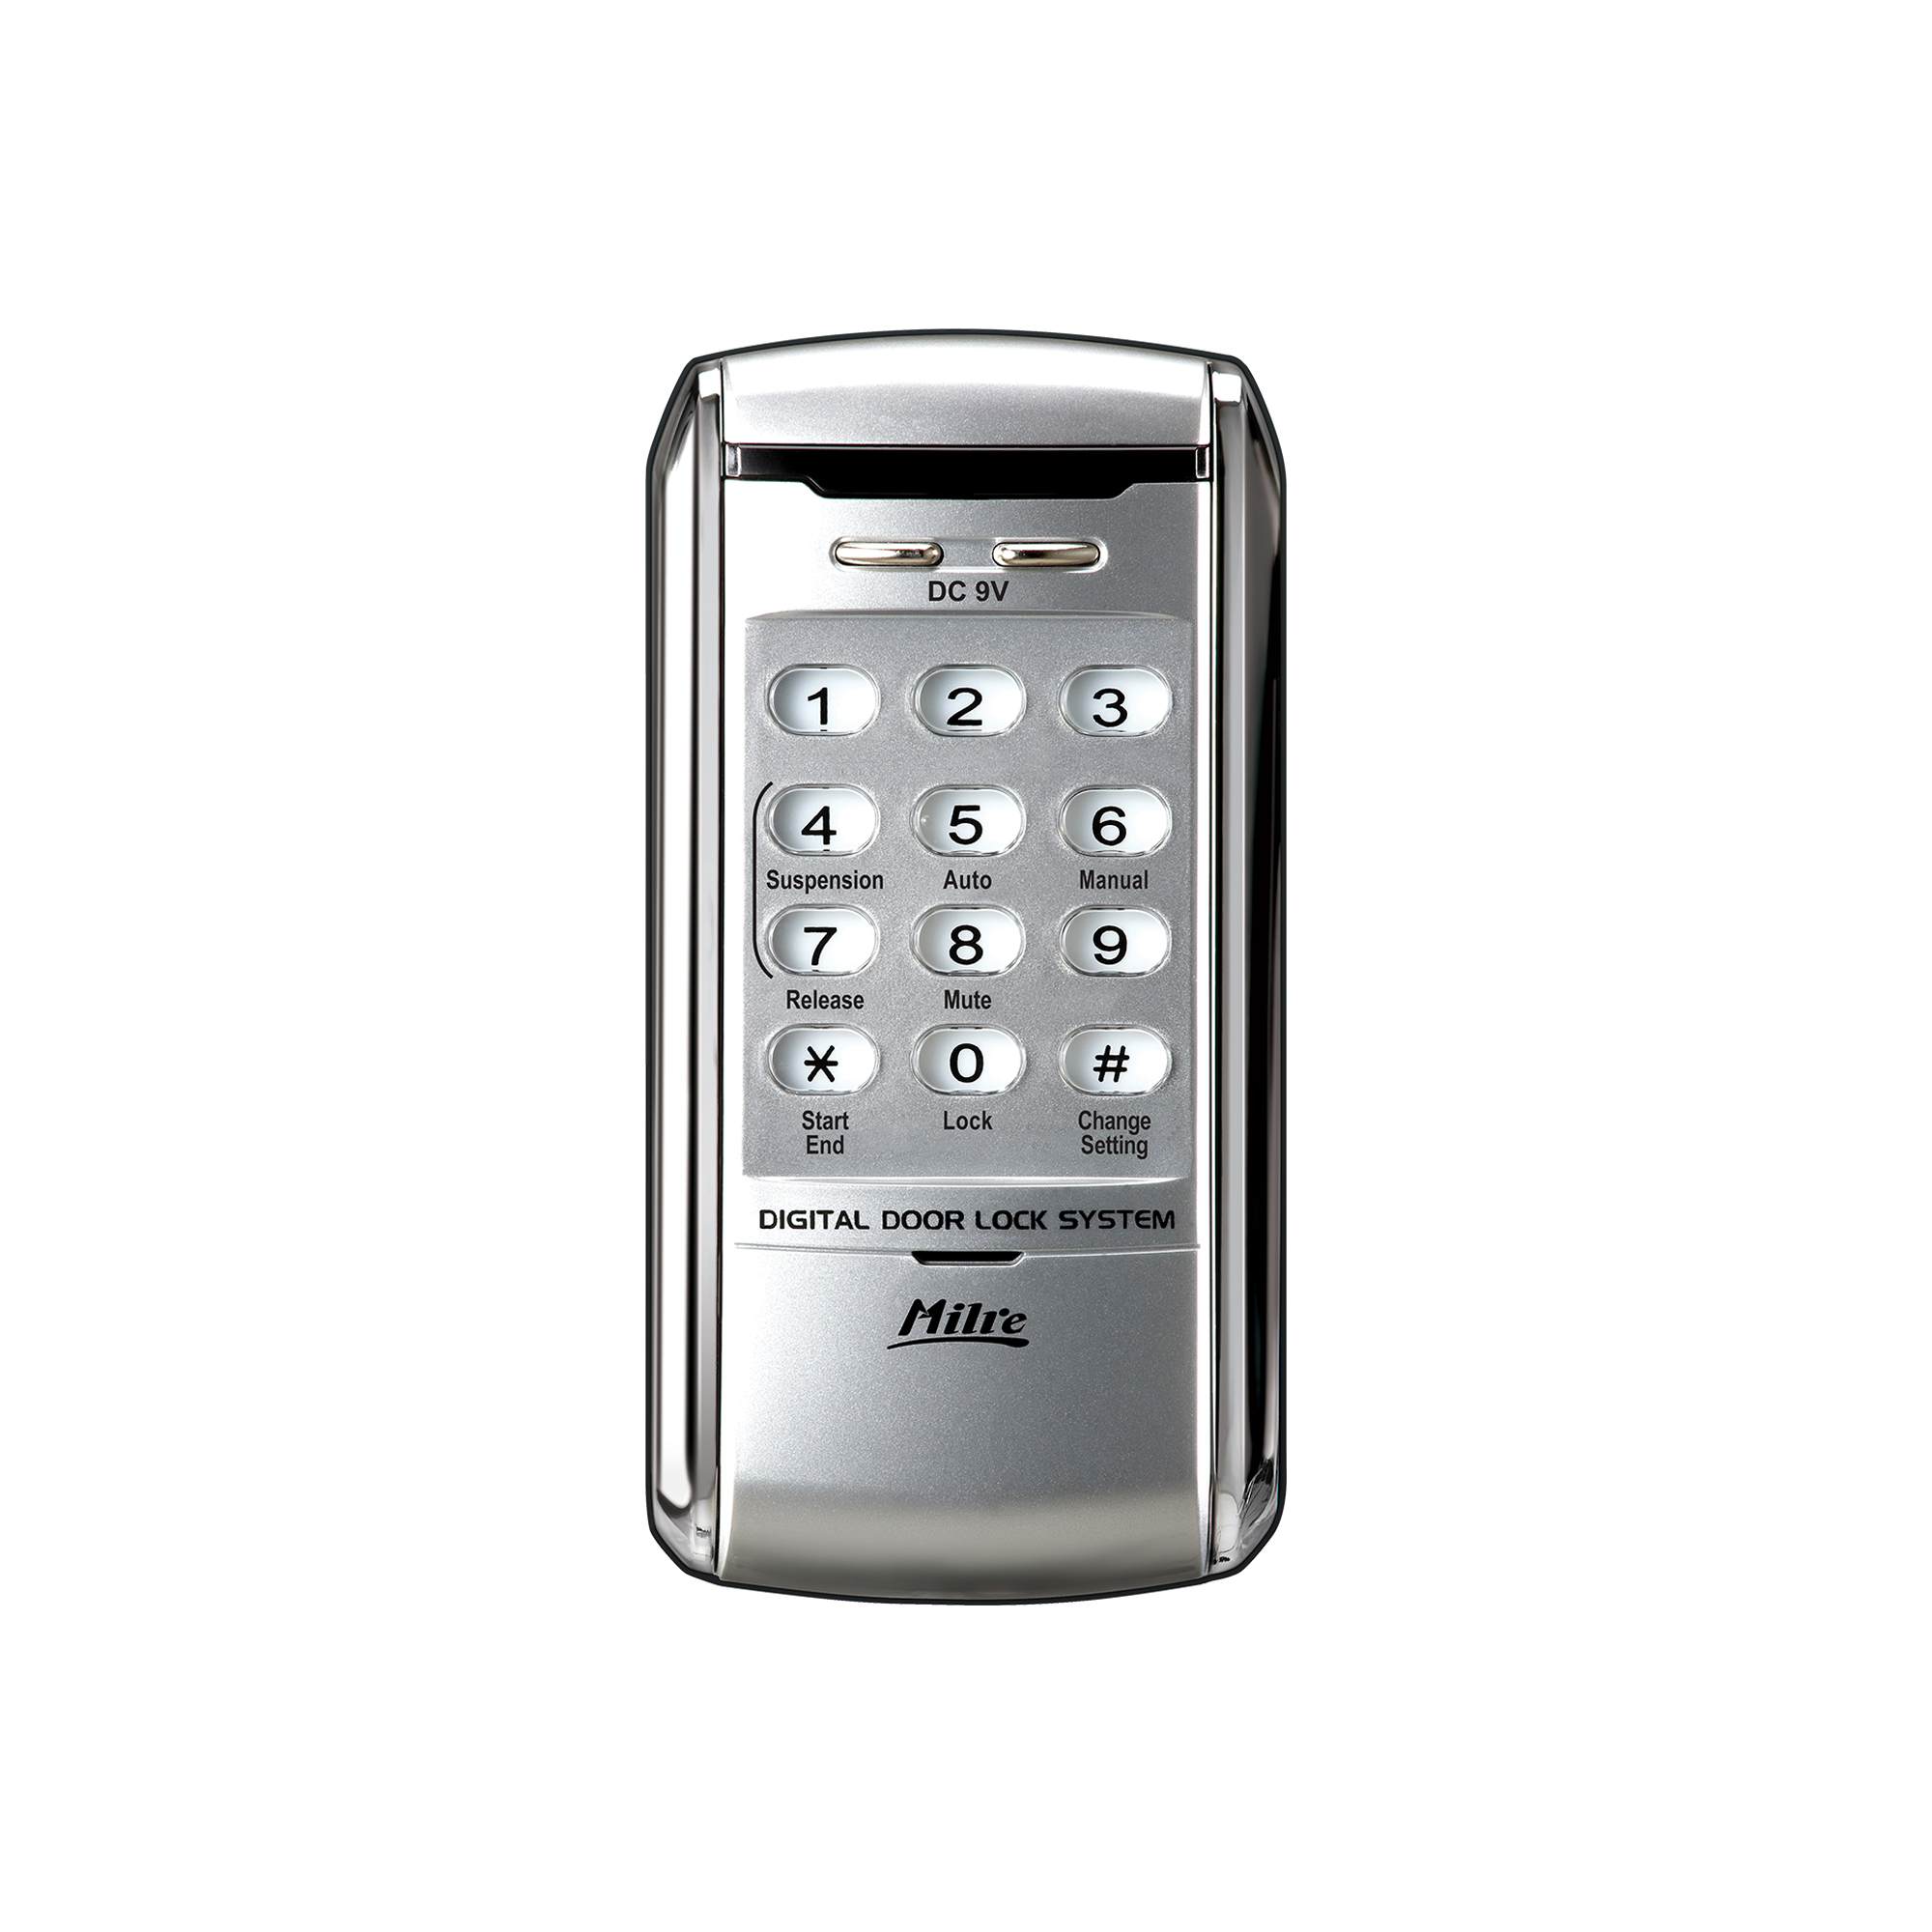 LOXguard Digital Door Lock รุ่น Milre MI-2300 (Code+Master Code)